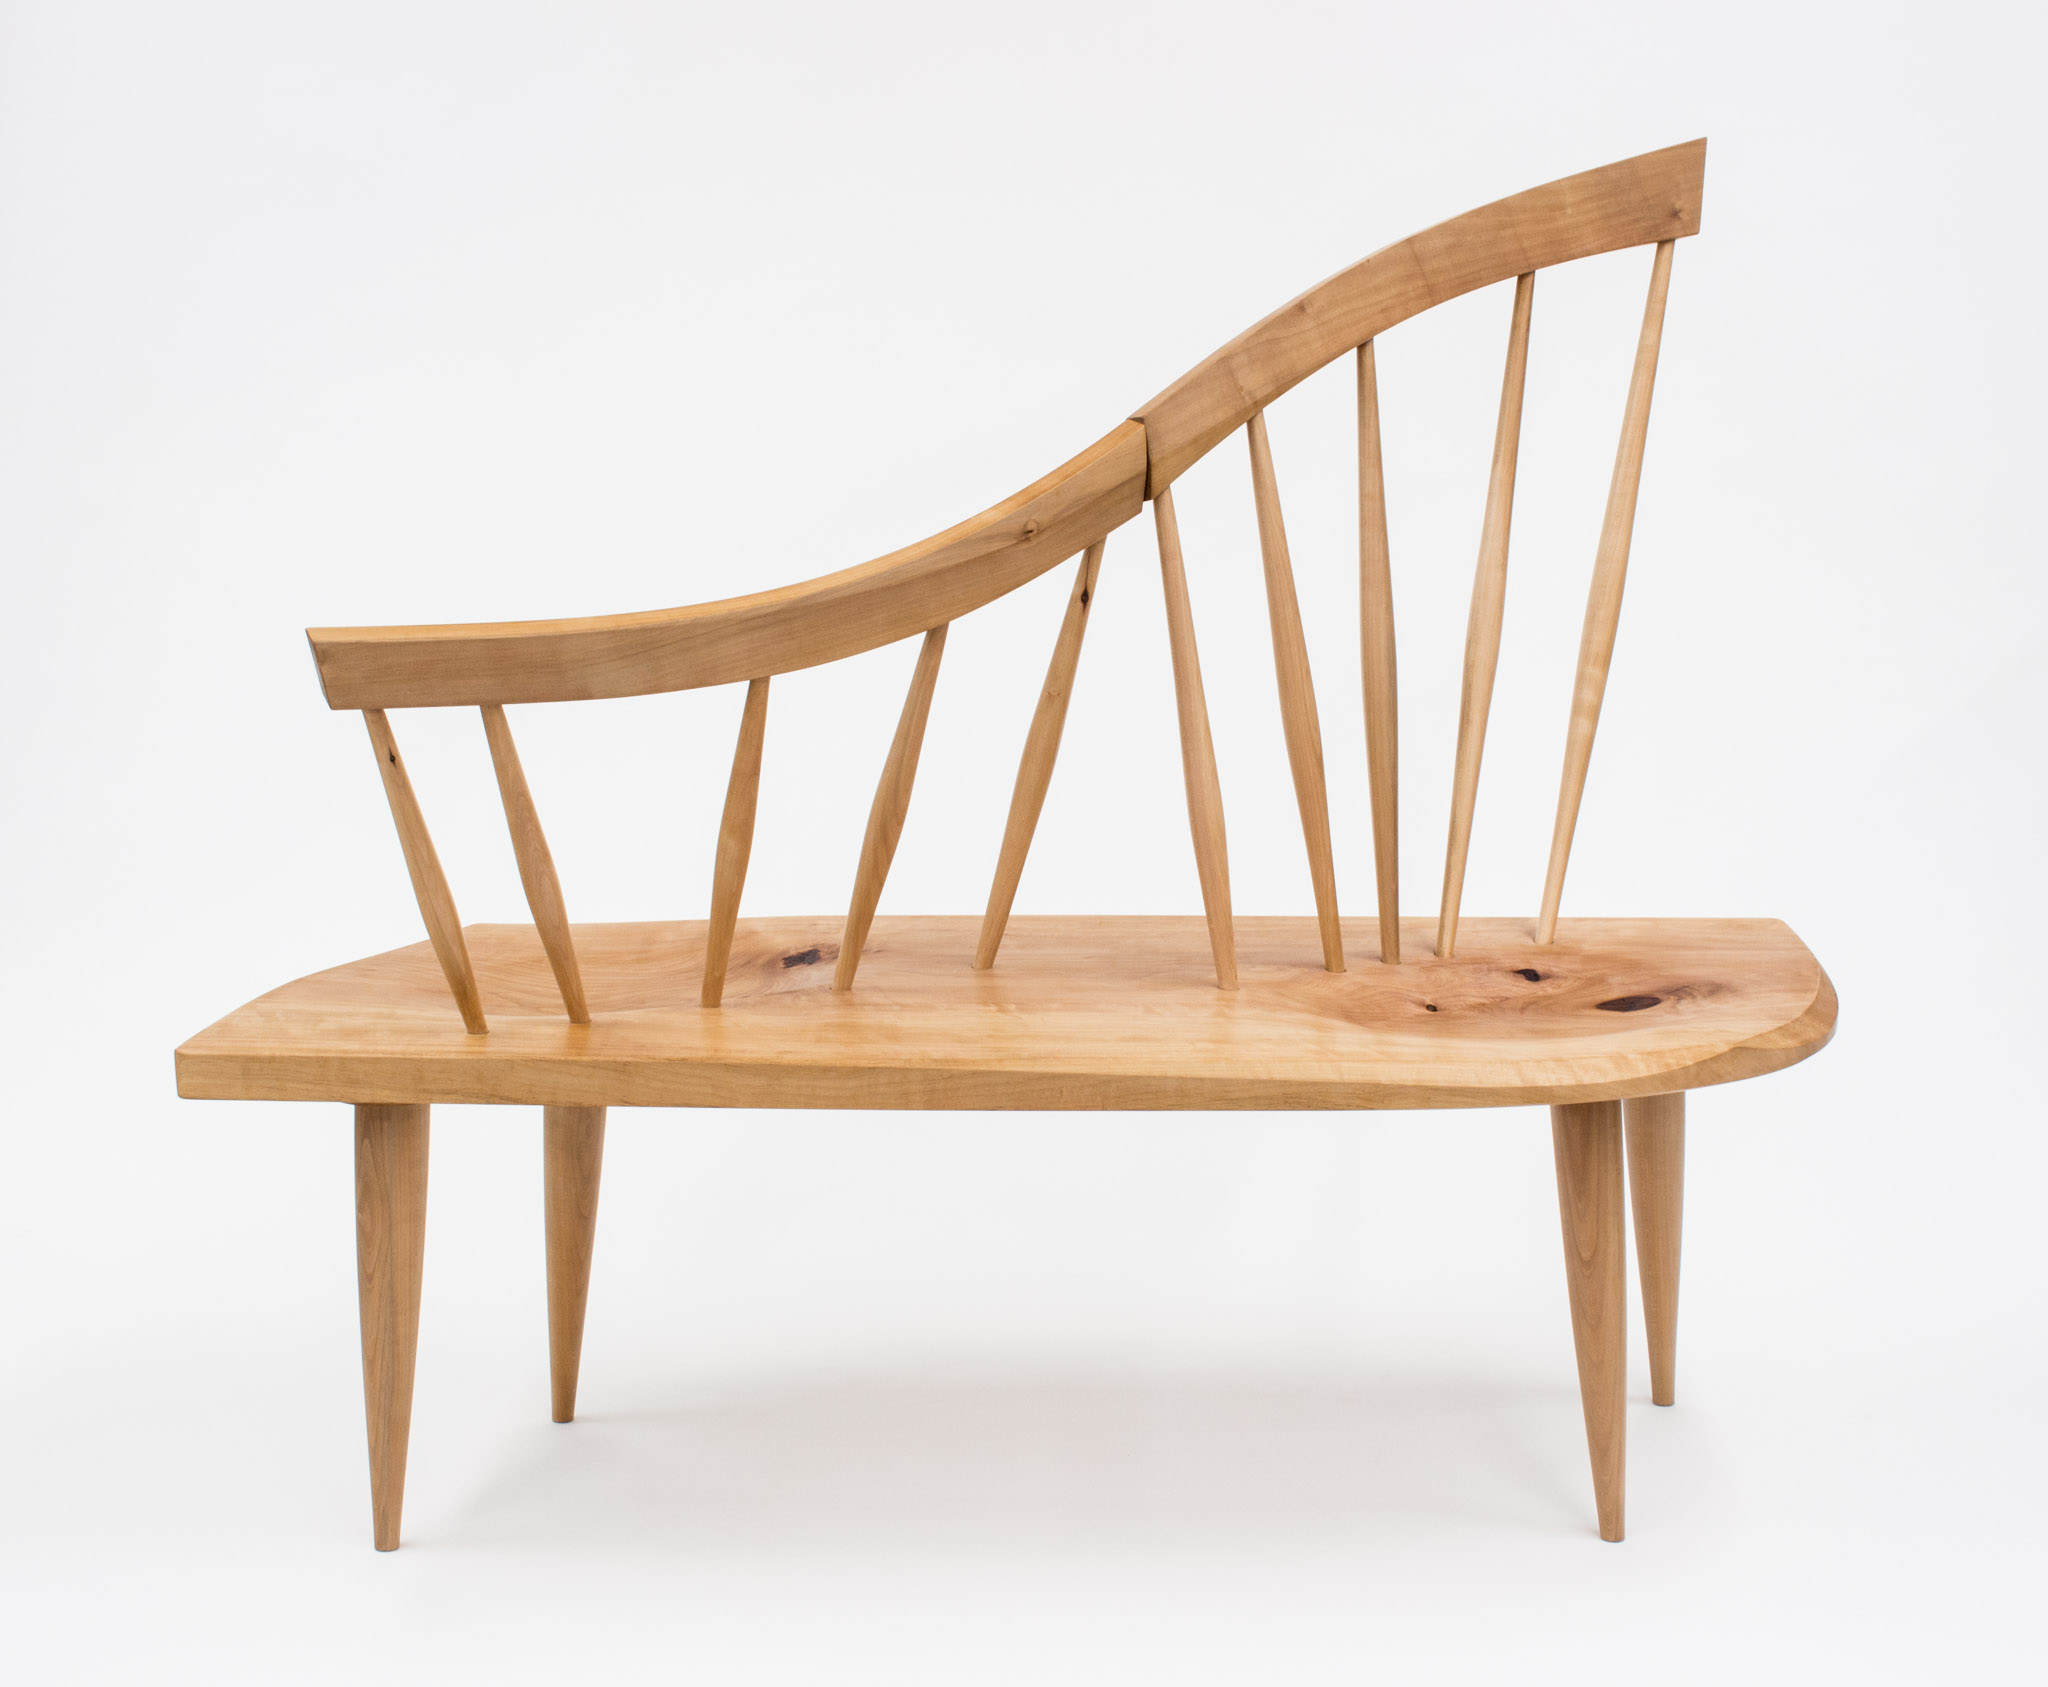 Tremendous Student Projects The Krenov School Of Fine Furniture Ncnpc Chair Design For Home Ncnpcorg